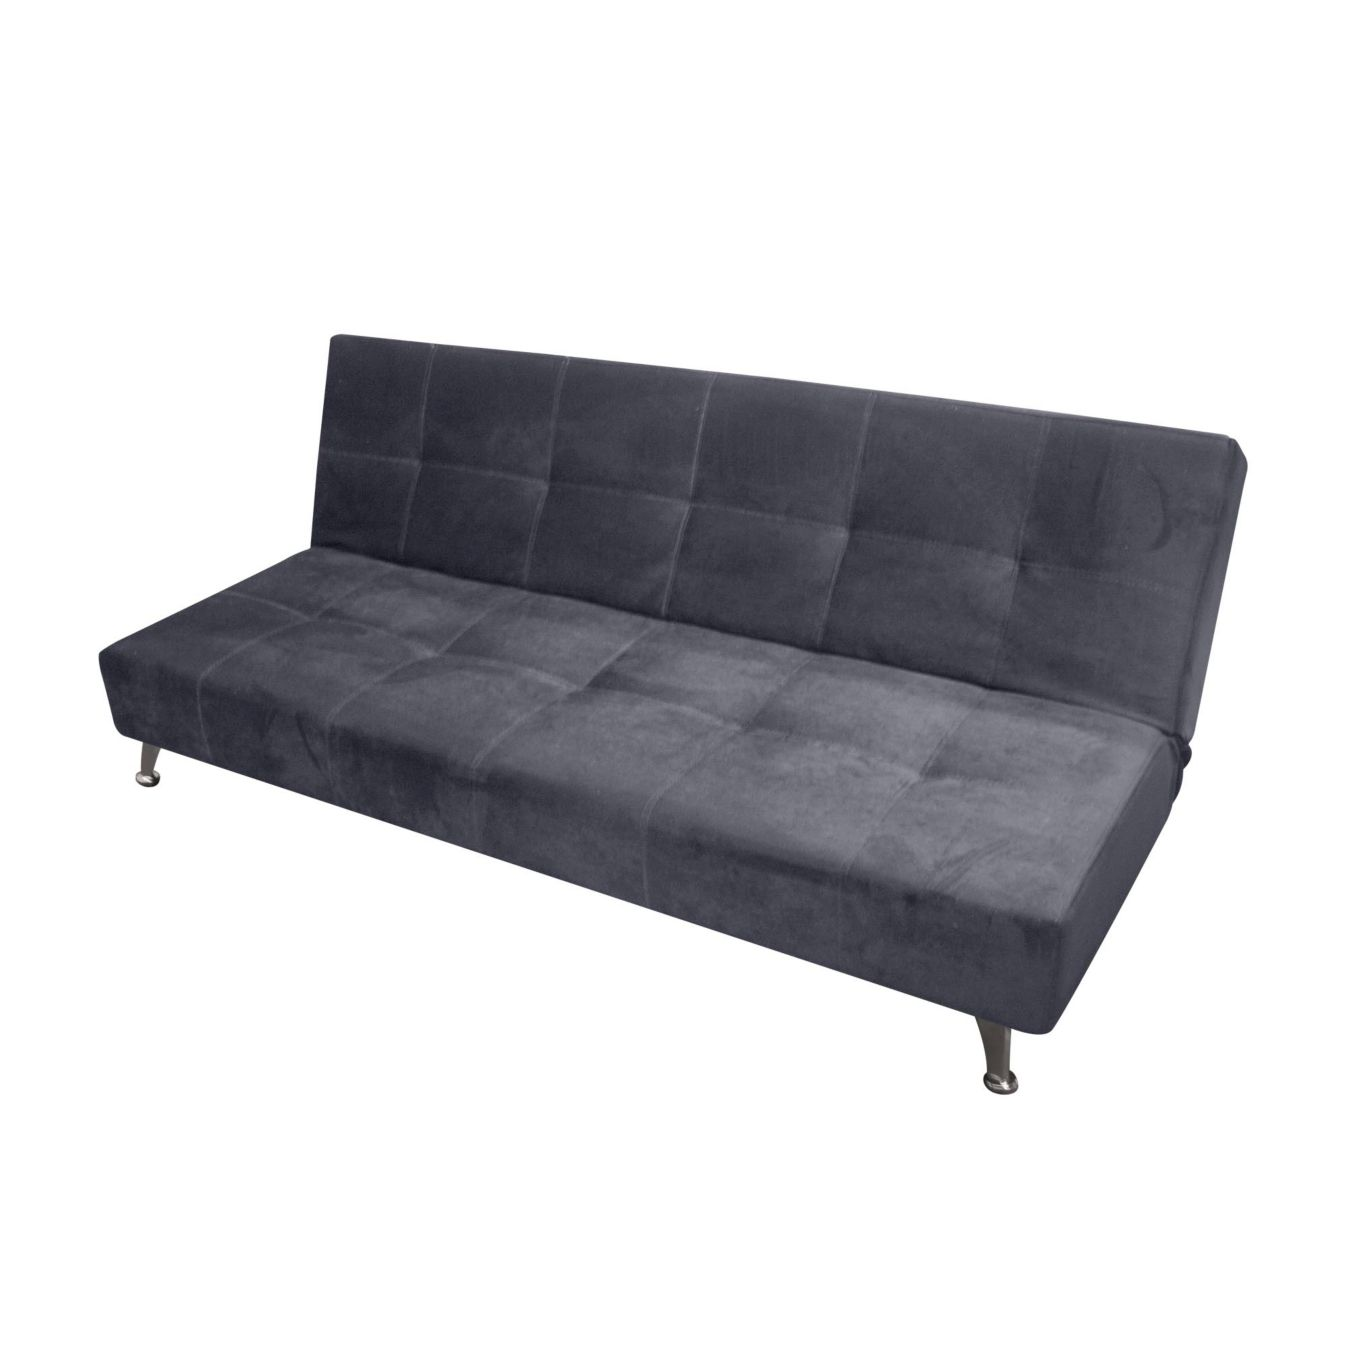 SOFA CAMA NICK MURANO NEGRO - Homecenter.com.co